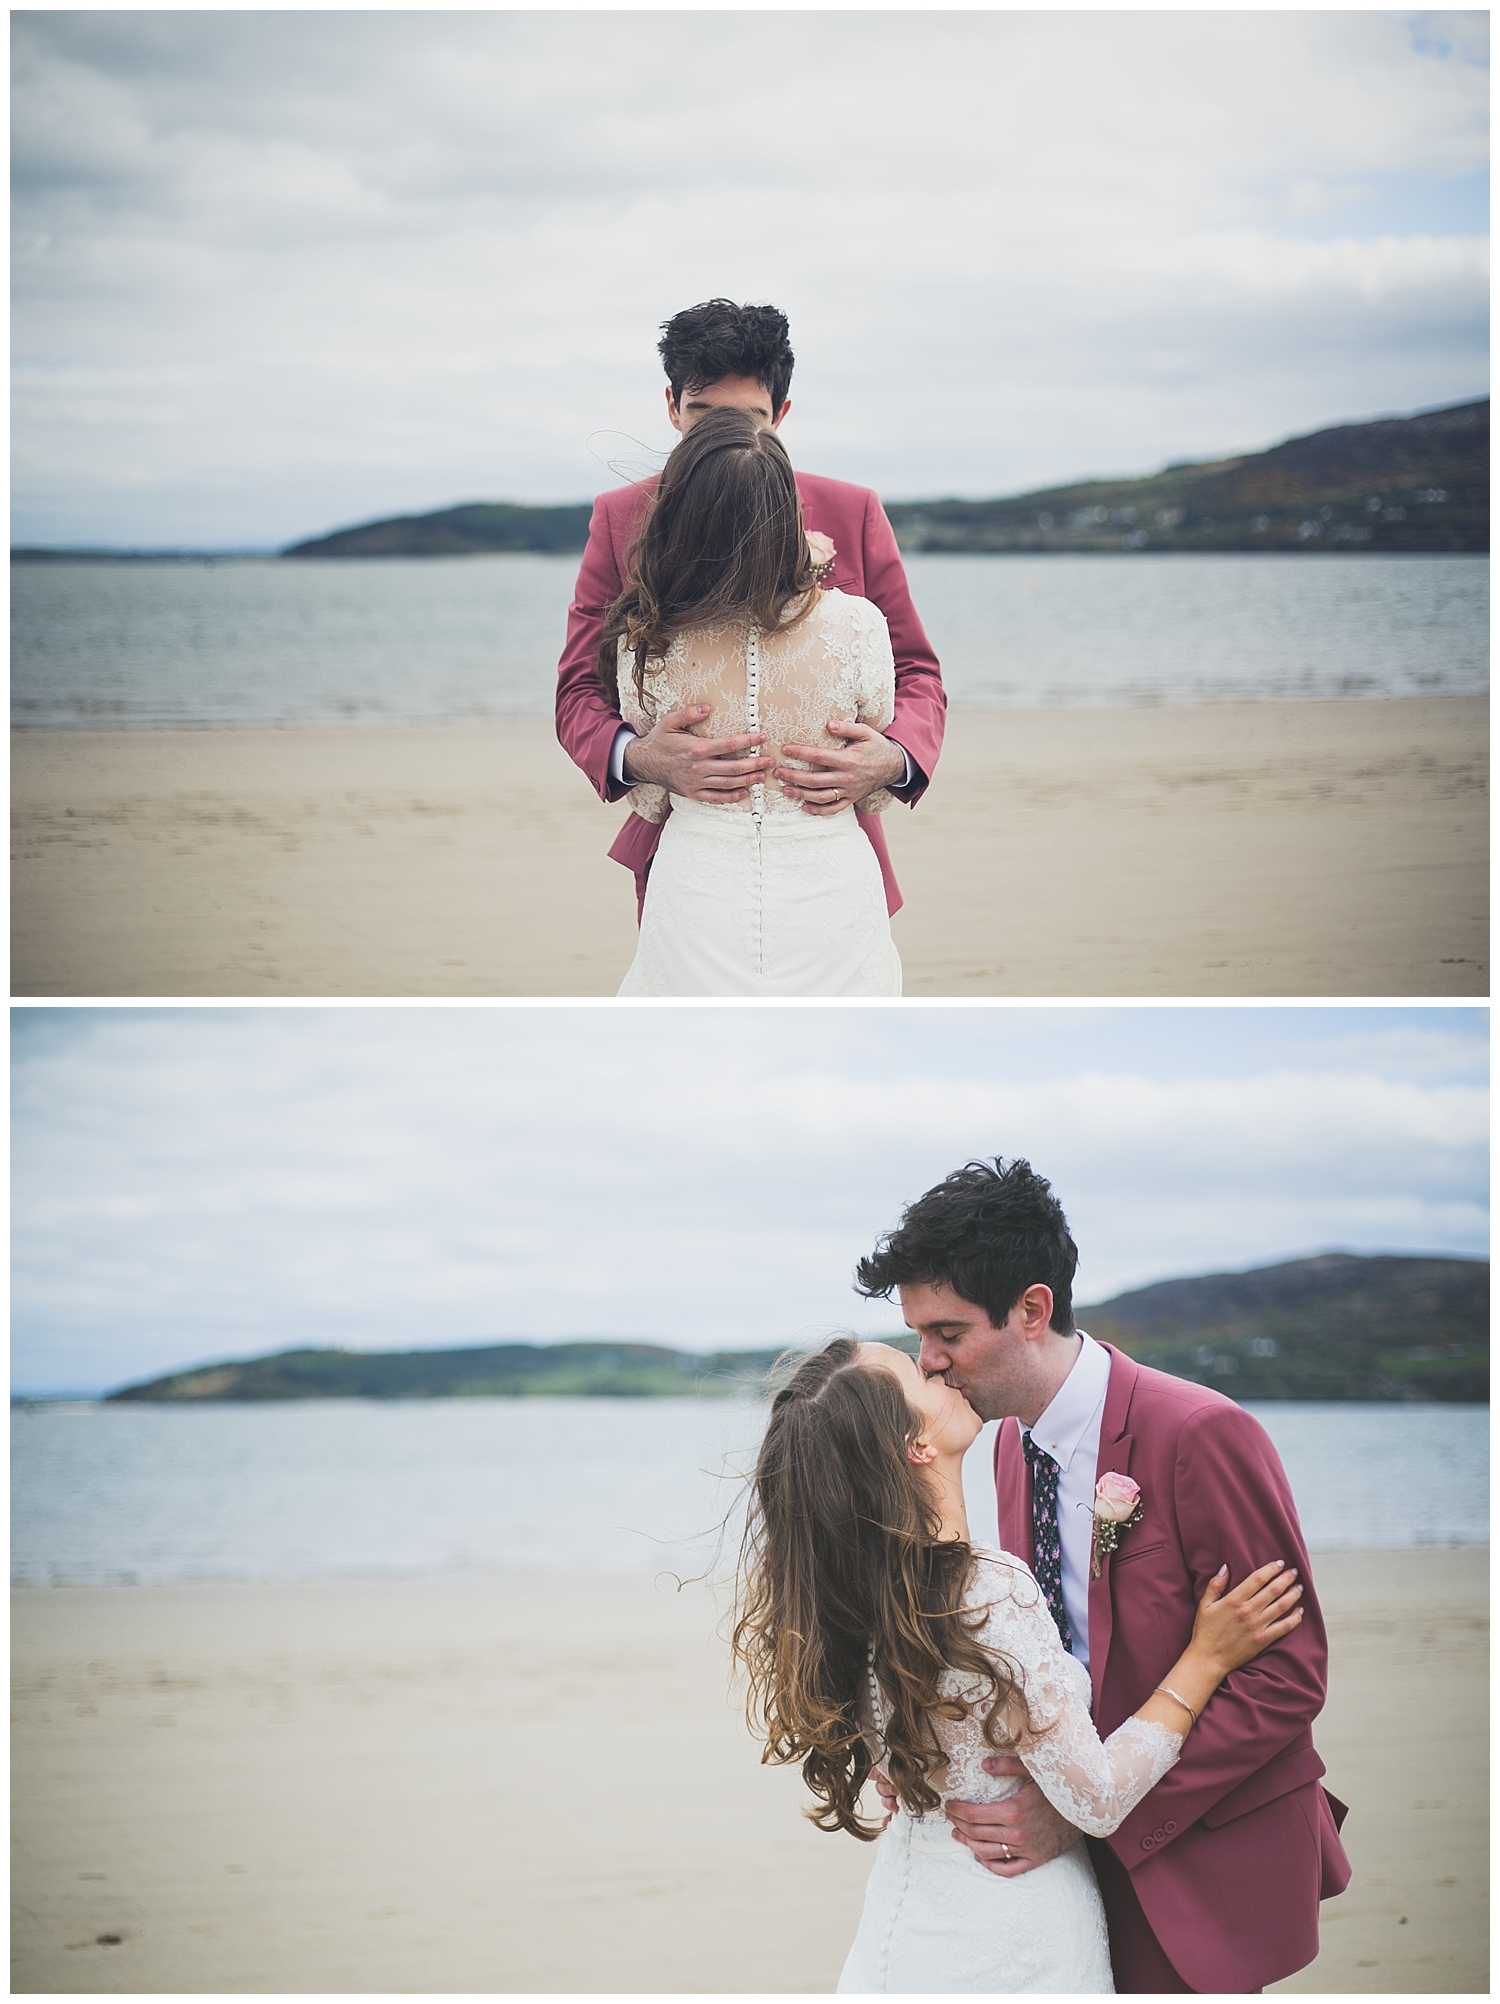 Irish wedding in Donegal - excellent elopement location